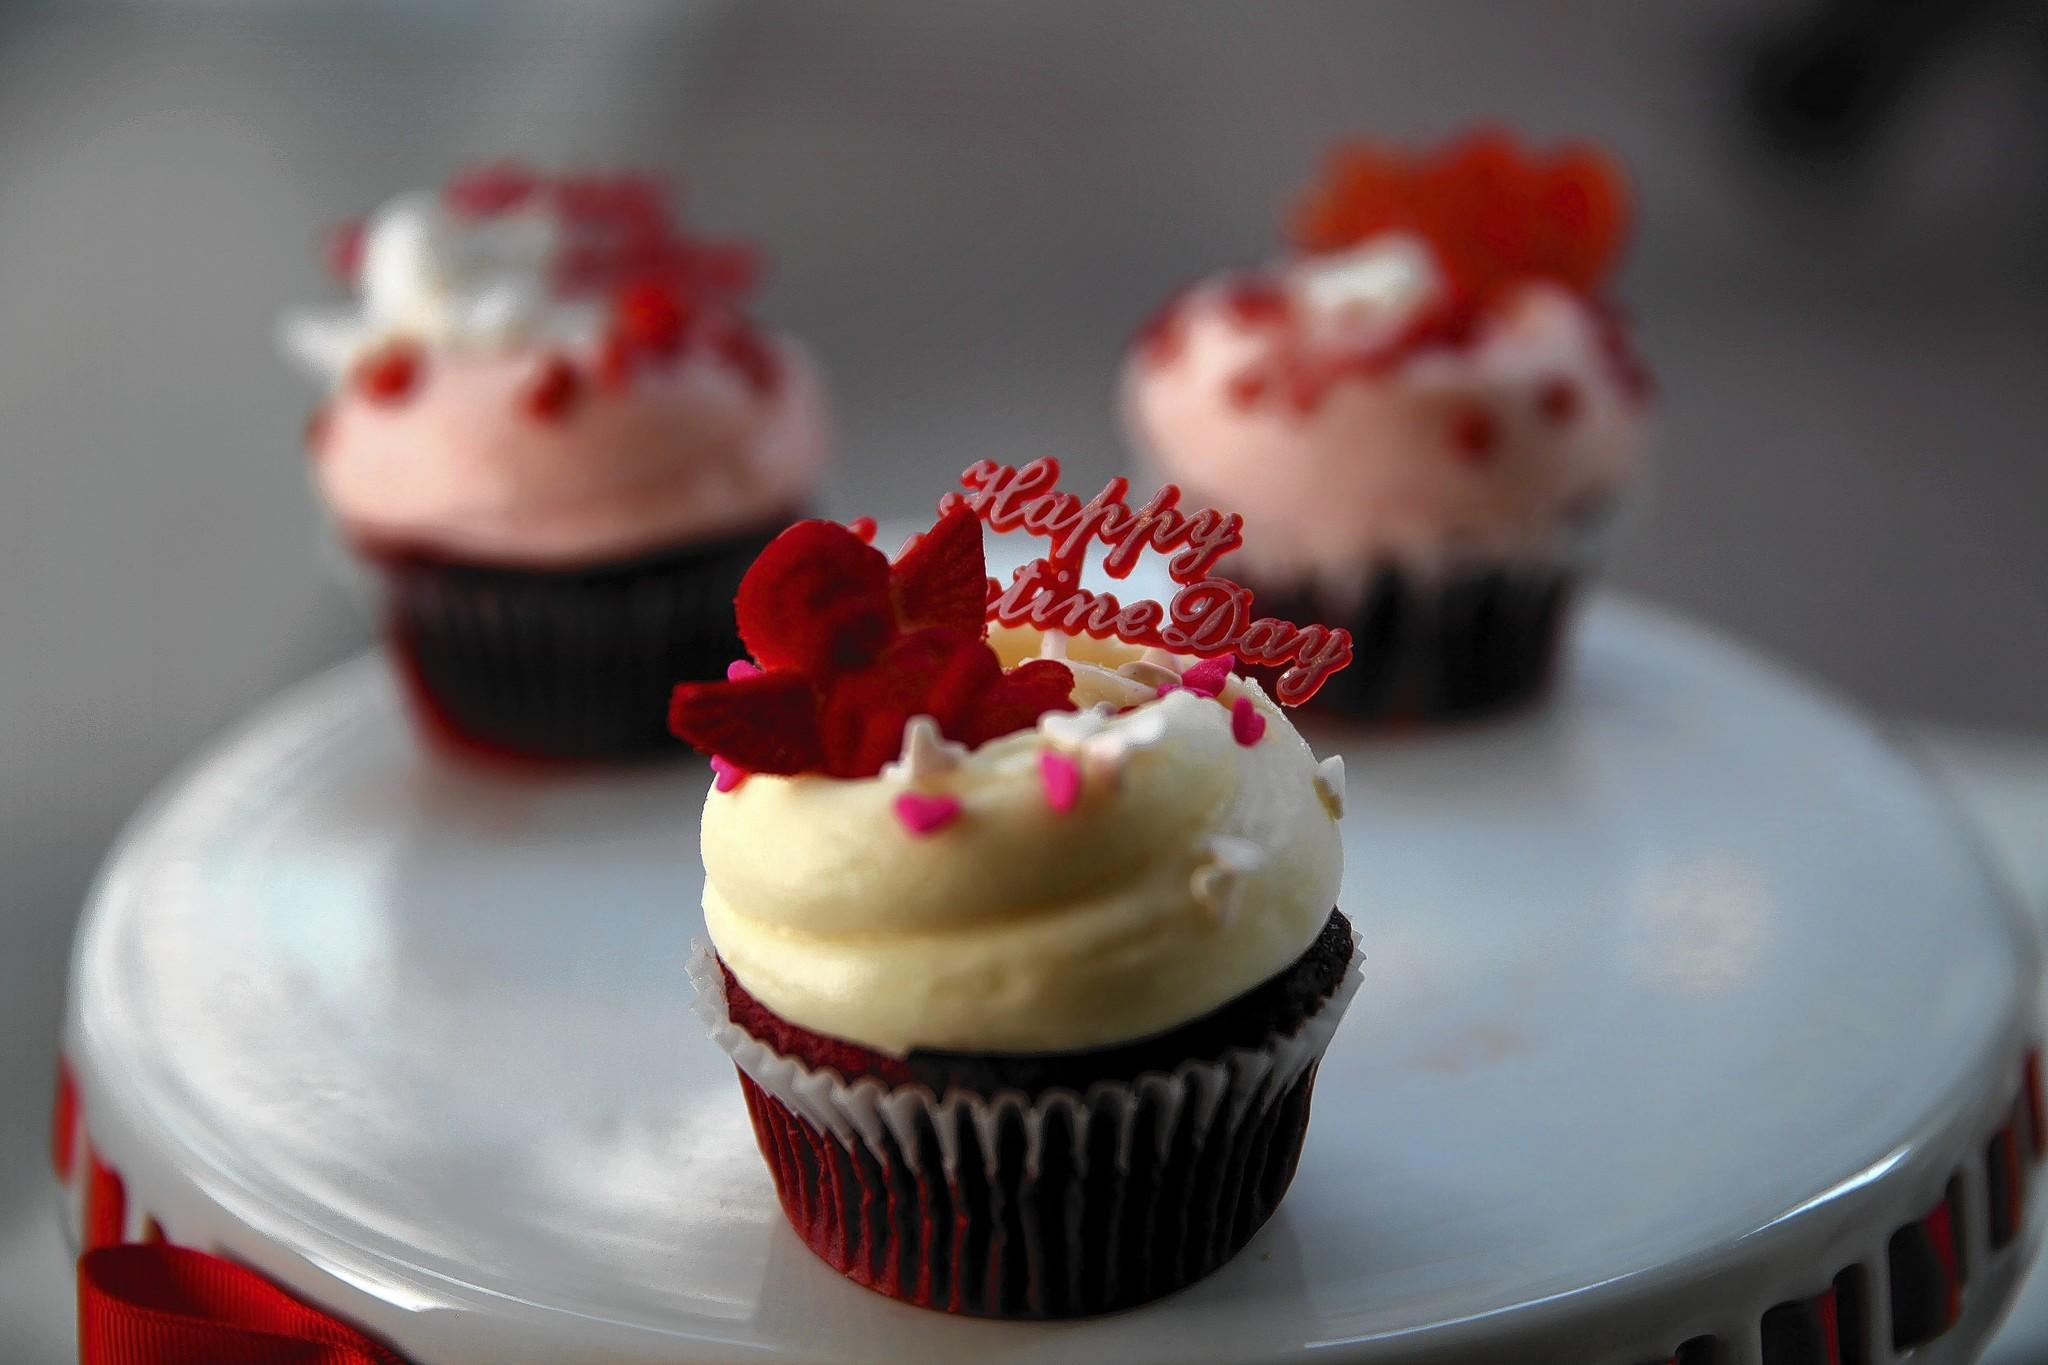 Red Velvet Valentine's Day cupcakes with vanilla buttercream frosting from Magnolia Bakery at State and Randolph Streets in Chicago.